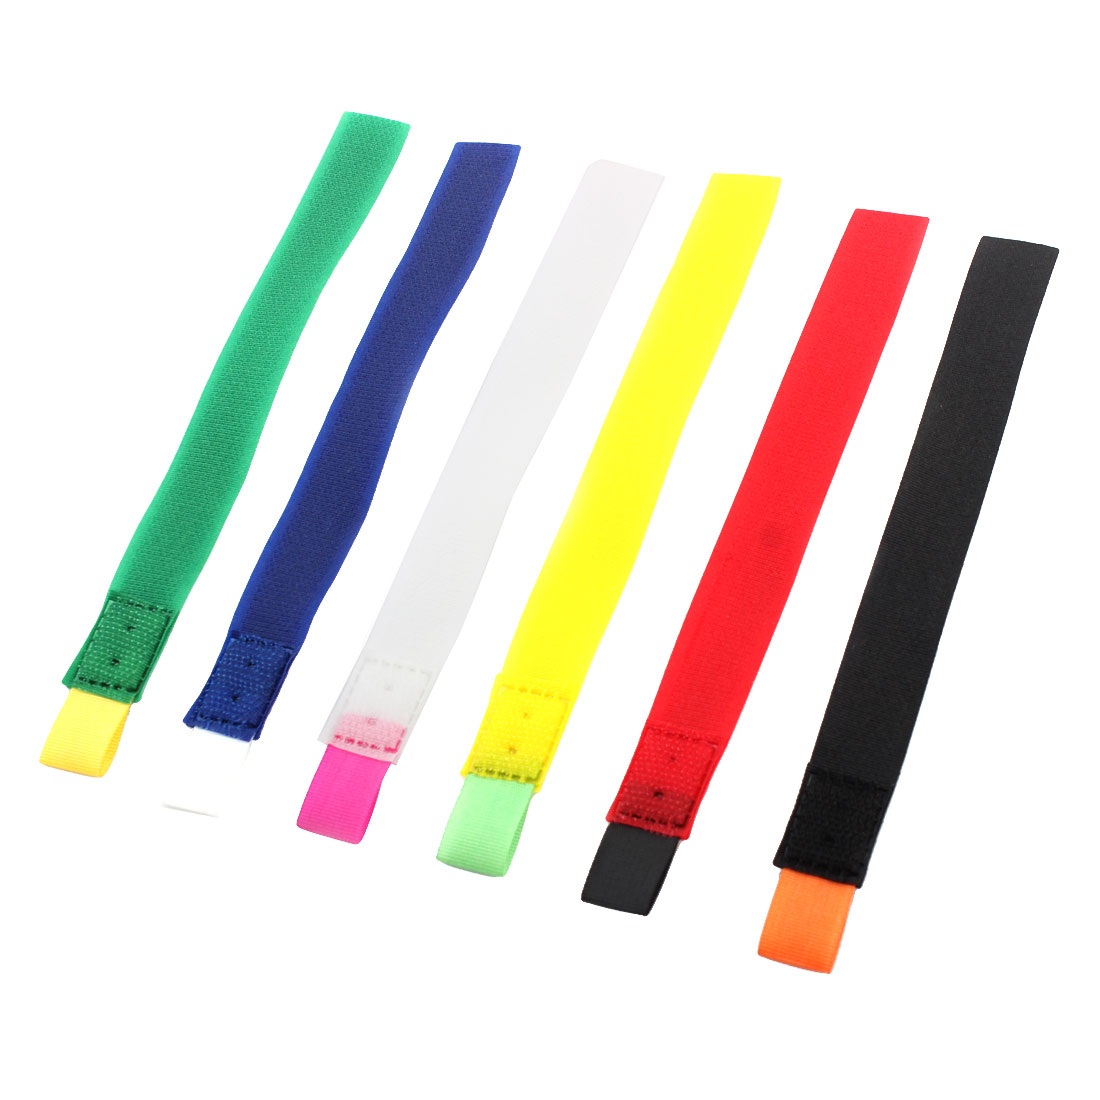 Self Adhesive Detachable Hook Loop Cable Wire Organizer Tape Assorted Color 6pcs